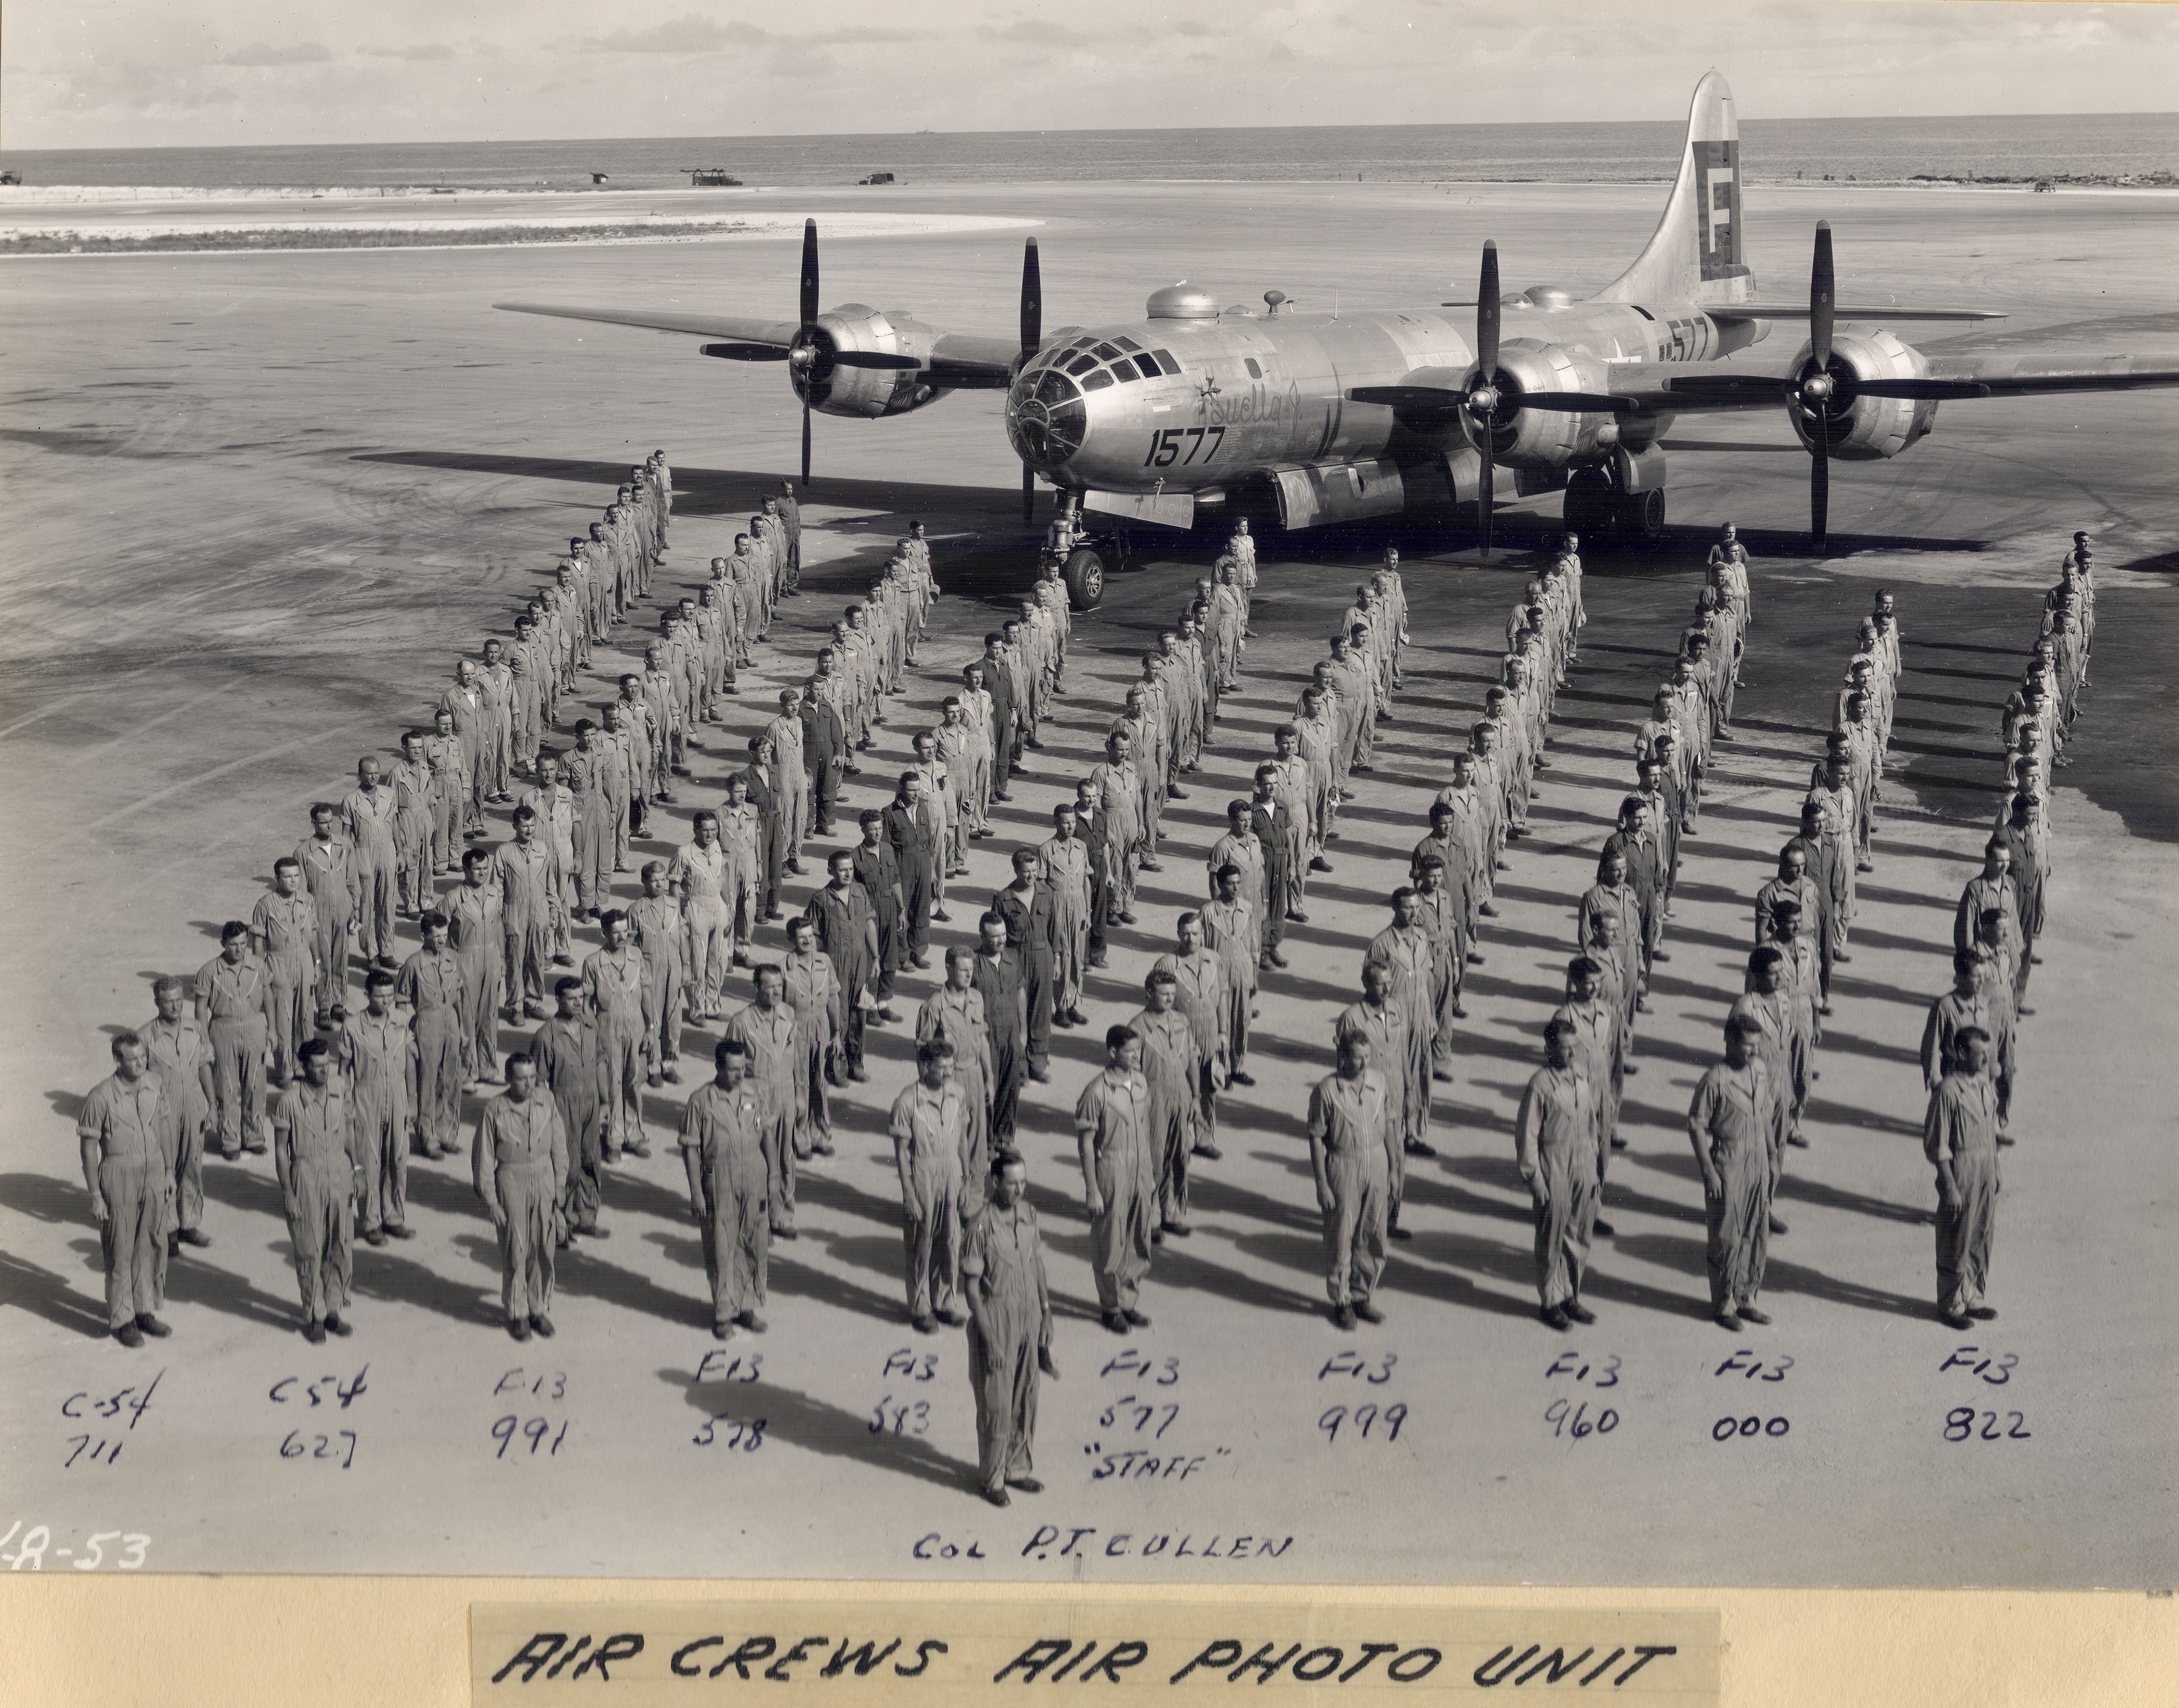 Air Crews from the Air Photo Unit, 1945-1946